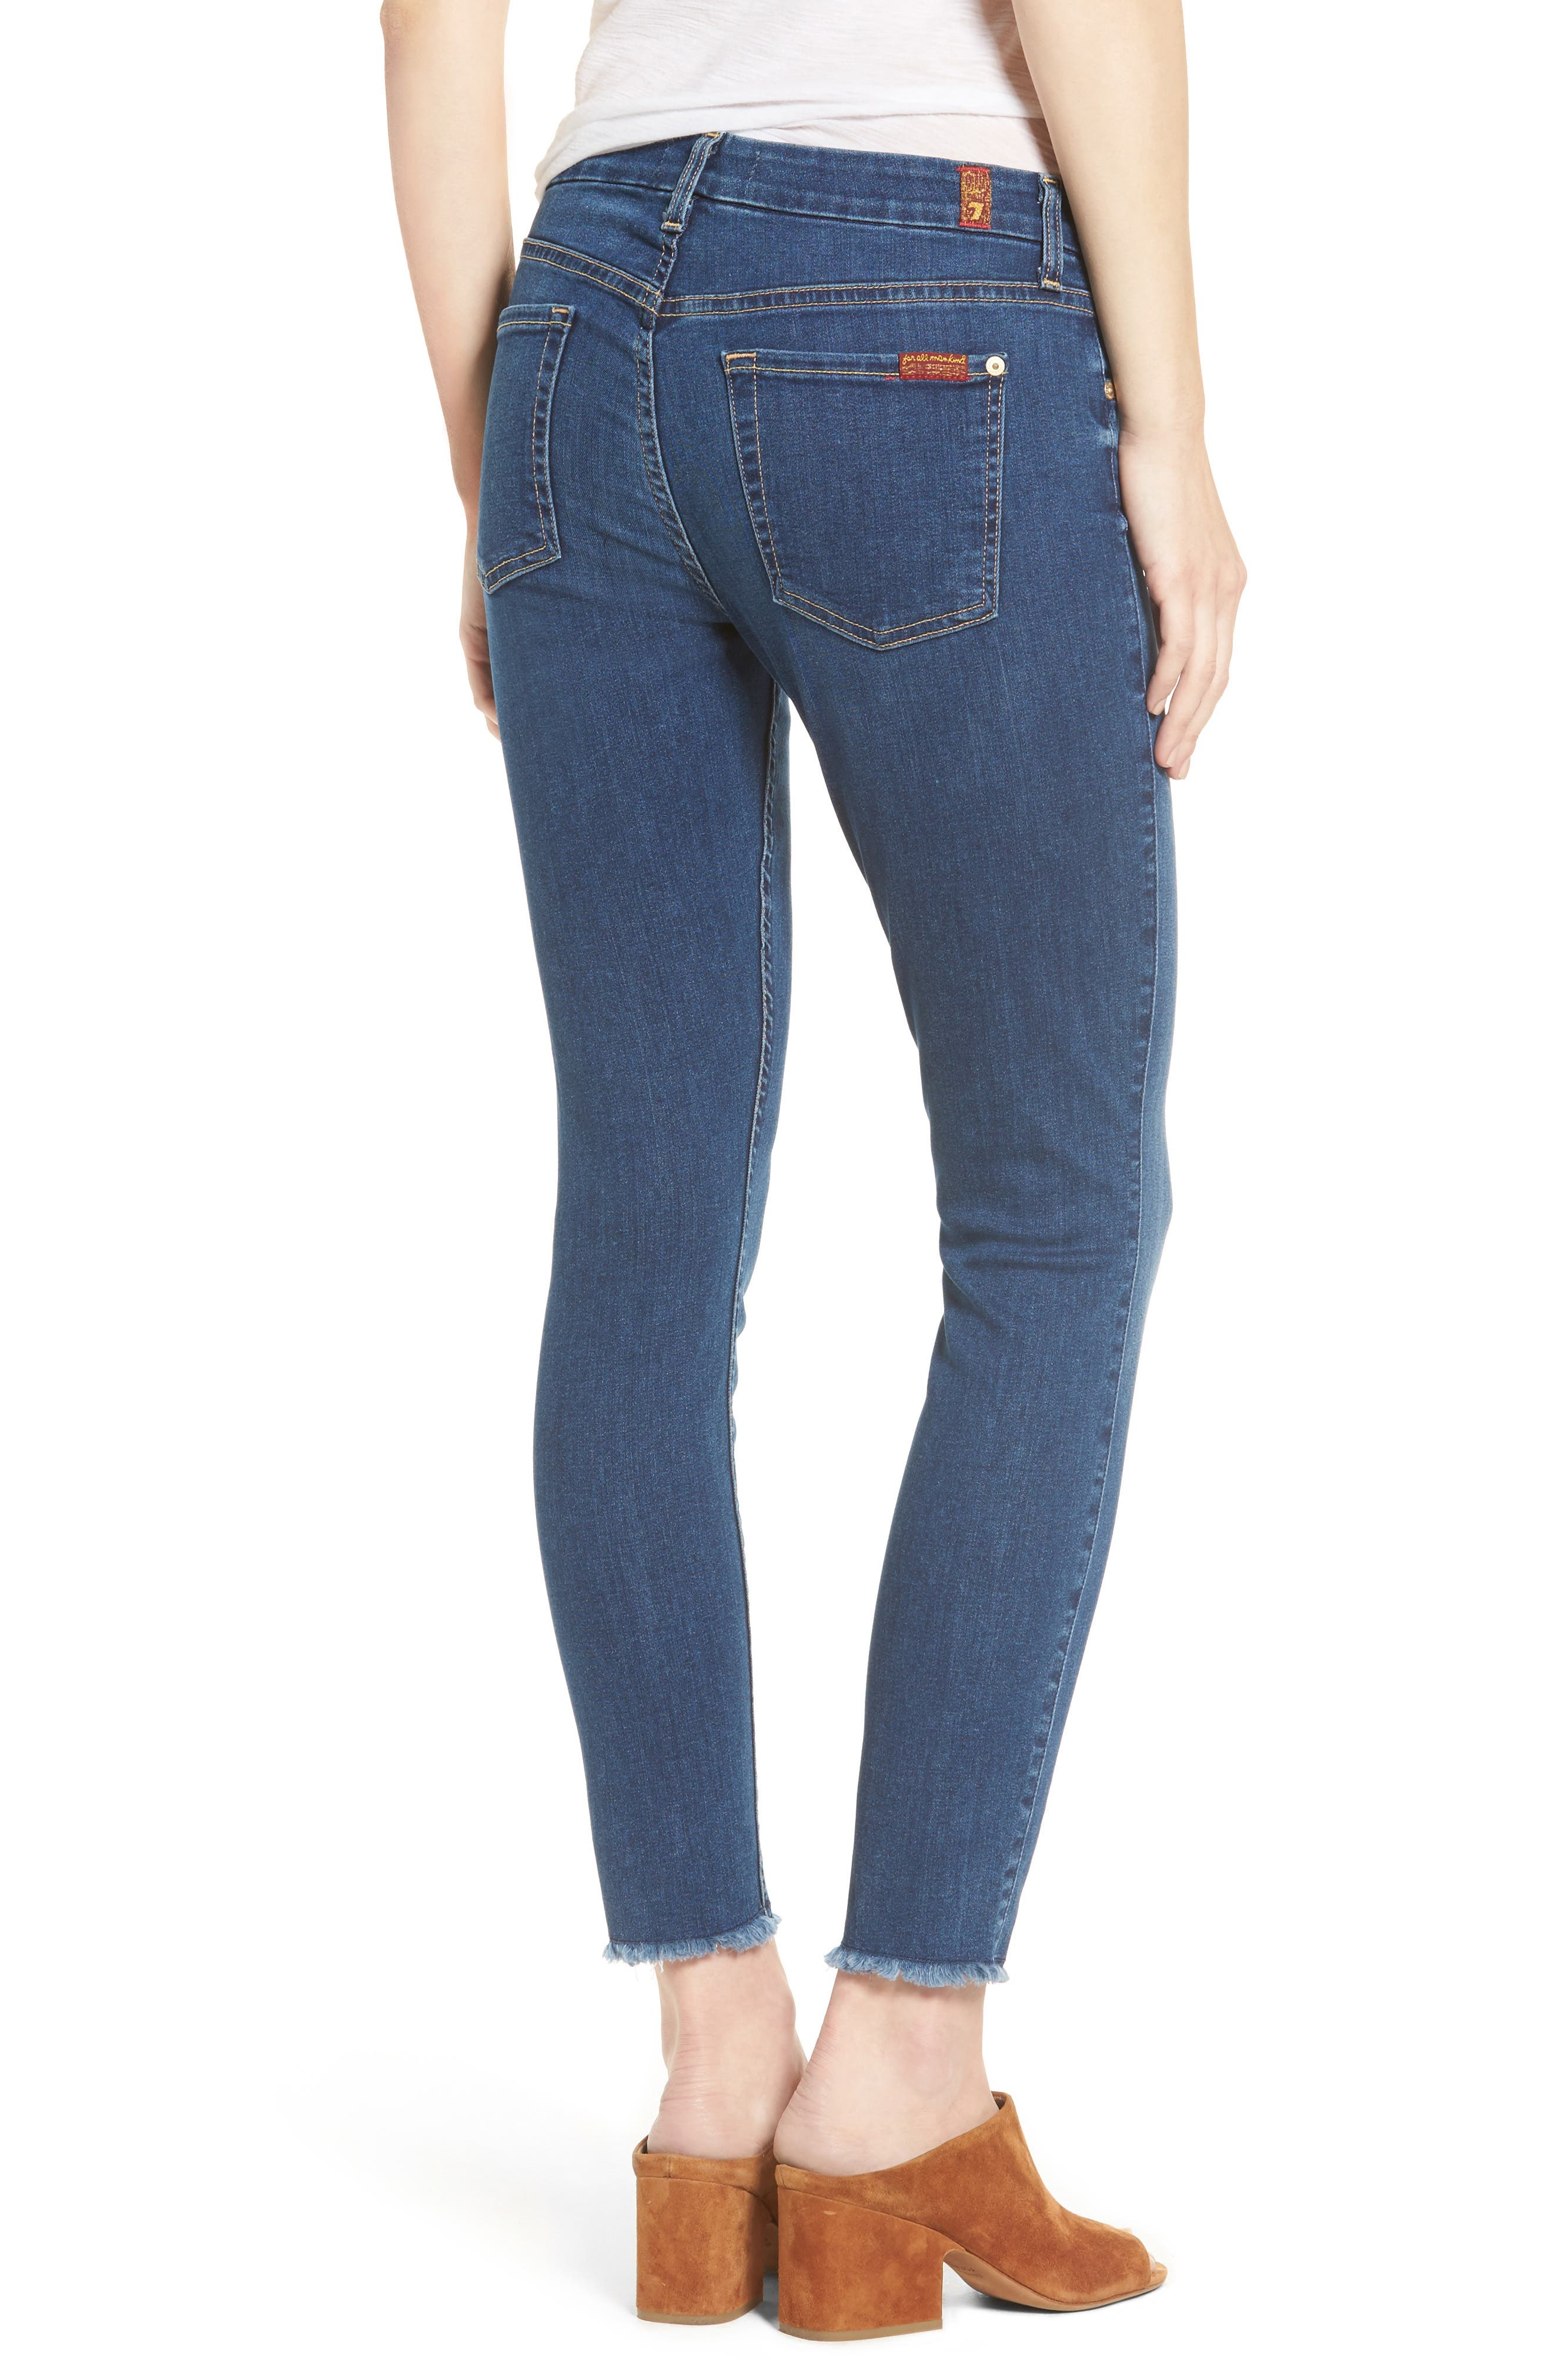 7 FOR ALL MANKIND<SUP>®</SUP>, b(air) Raw Hem Ankle Skinny Jeans, Alternate thumbnail 2, color, BAIR REIGN